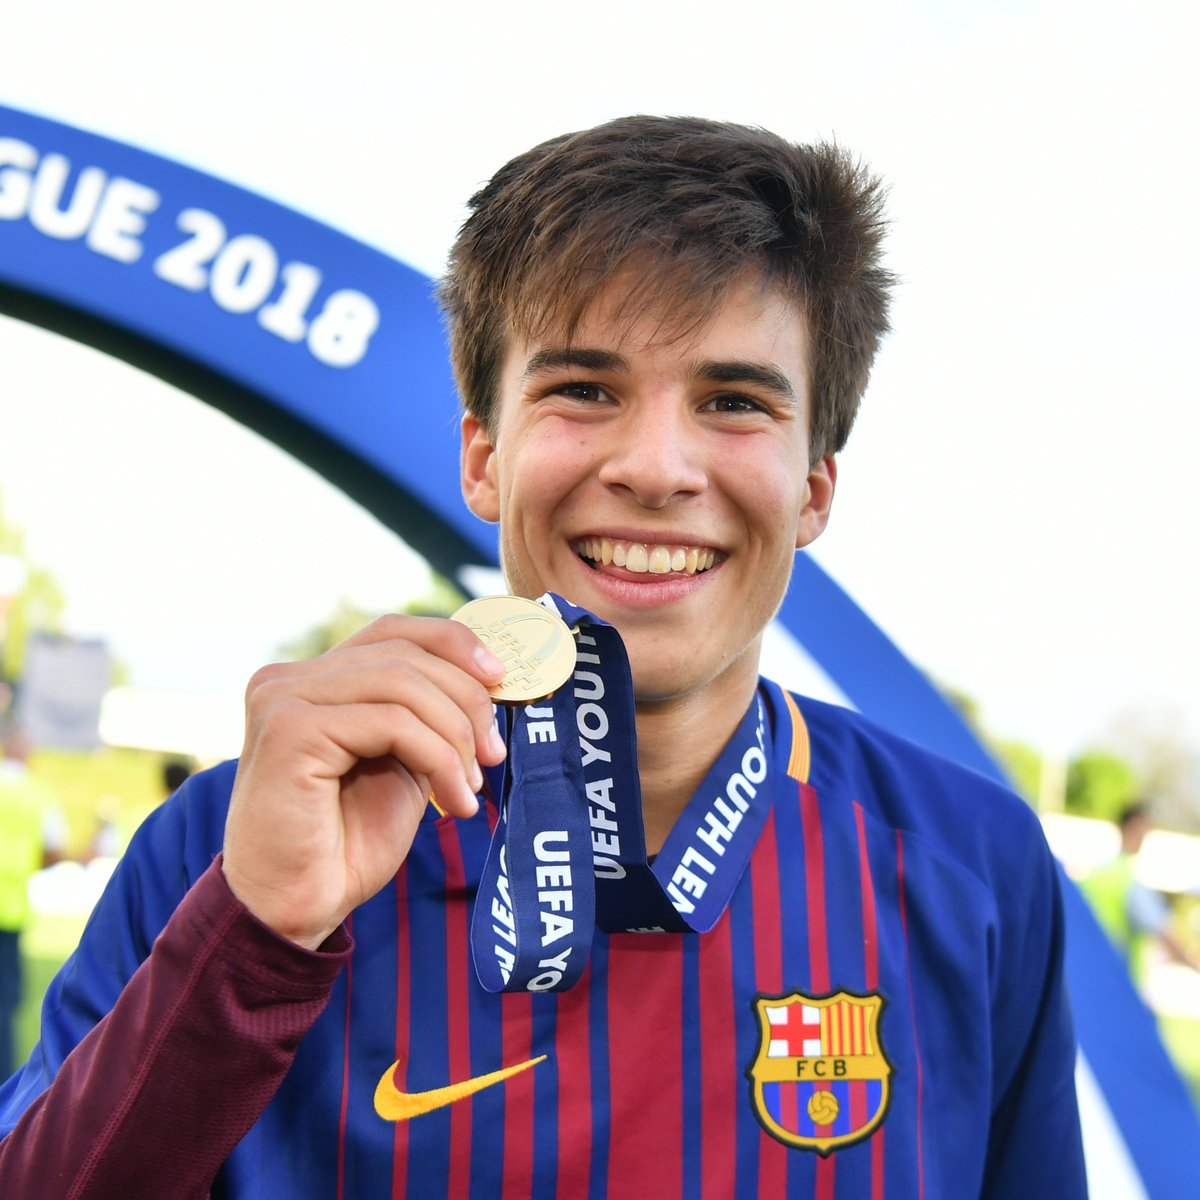 🔵 From La Masia to Barça first team... 🔴 First senior goal for Riqui Puig!   📸: @UEFAYouthLeague winner in 2018  #UCL